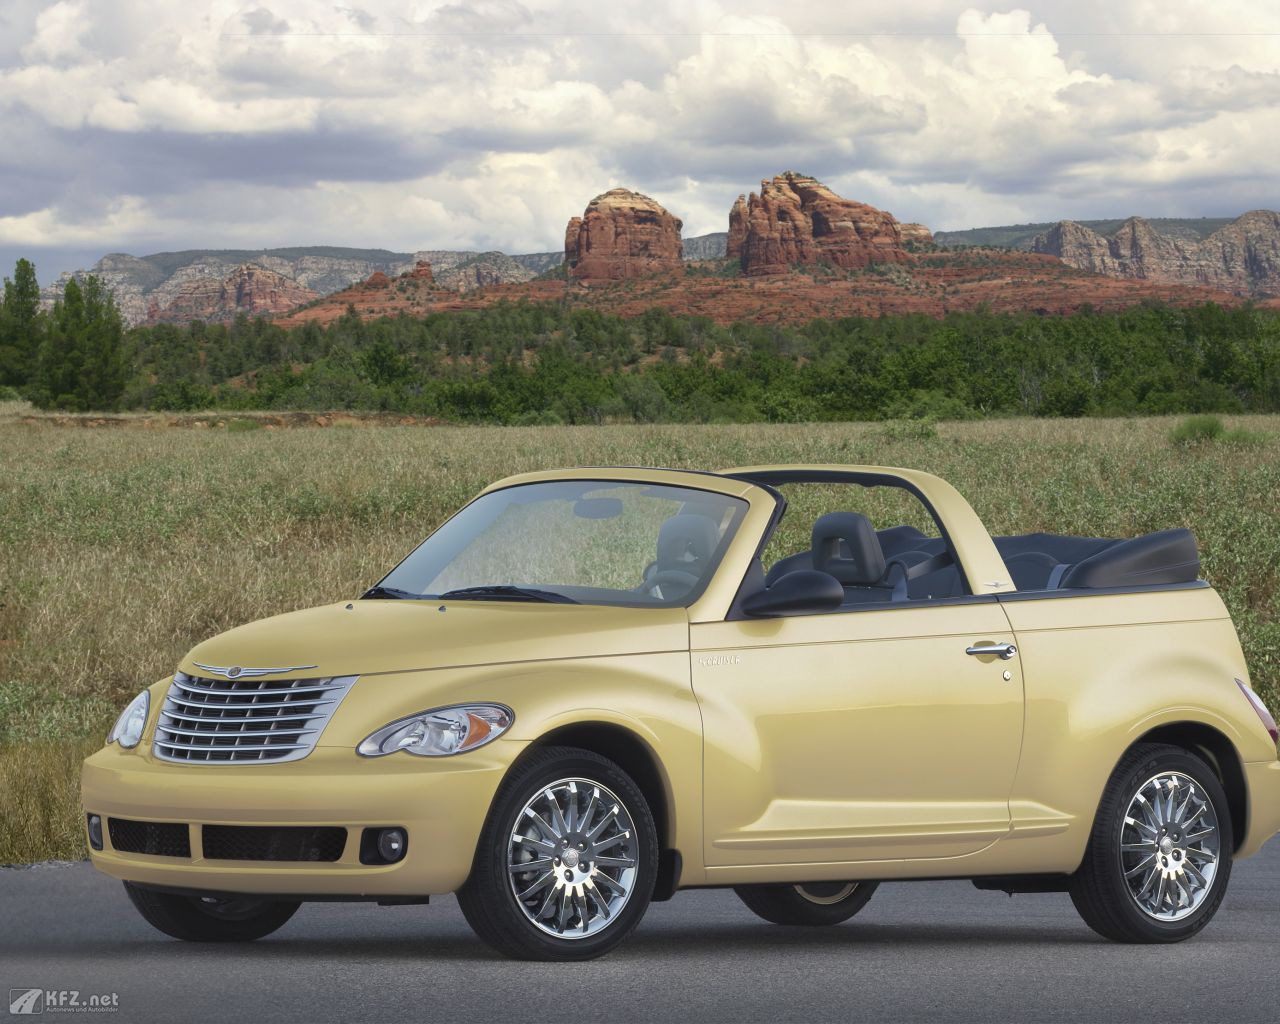 chrysler-pt-cruiser-1280x1024-3